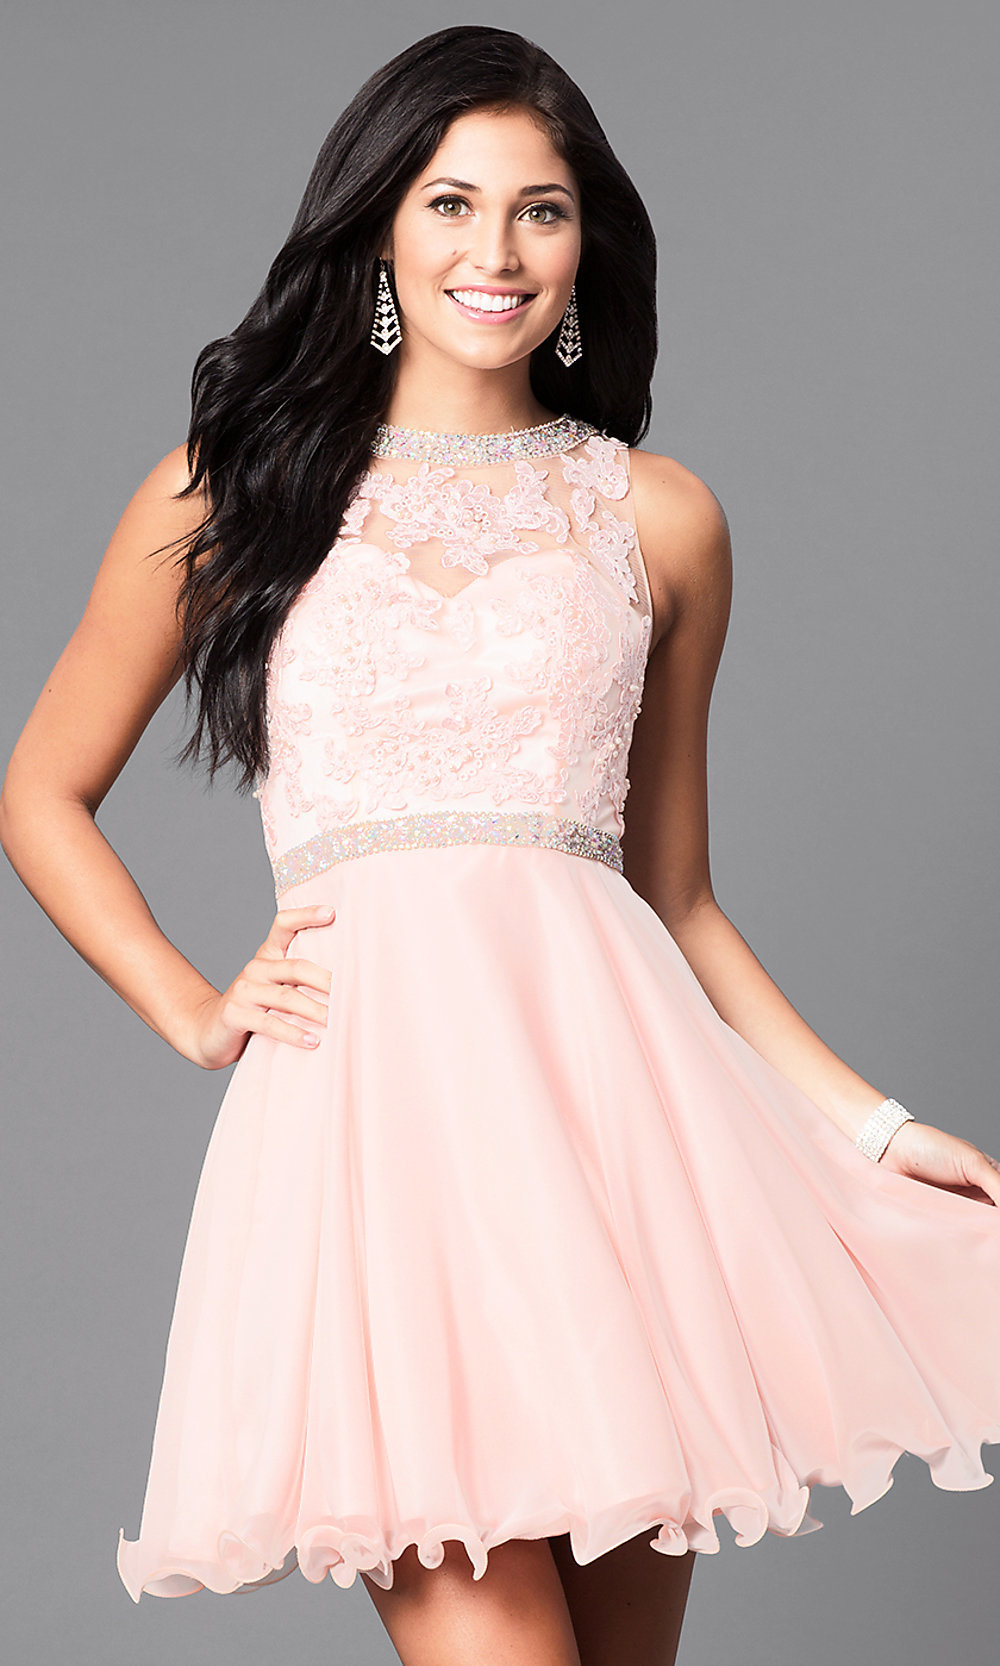 Sleeveless Lace Bodice Homecoming Dress Promgirl